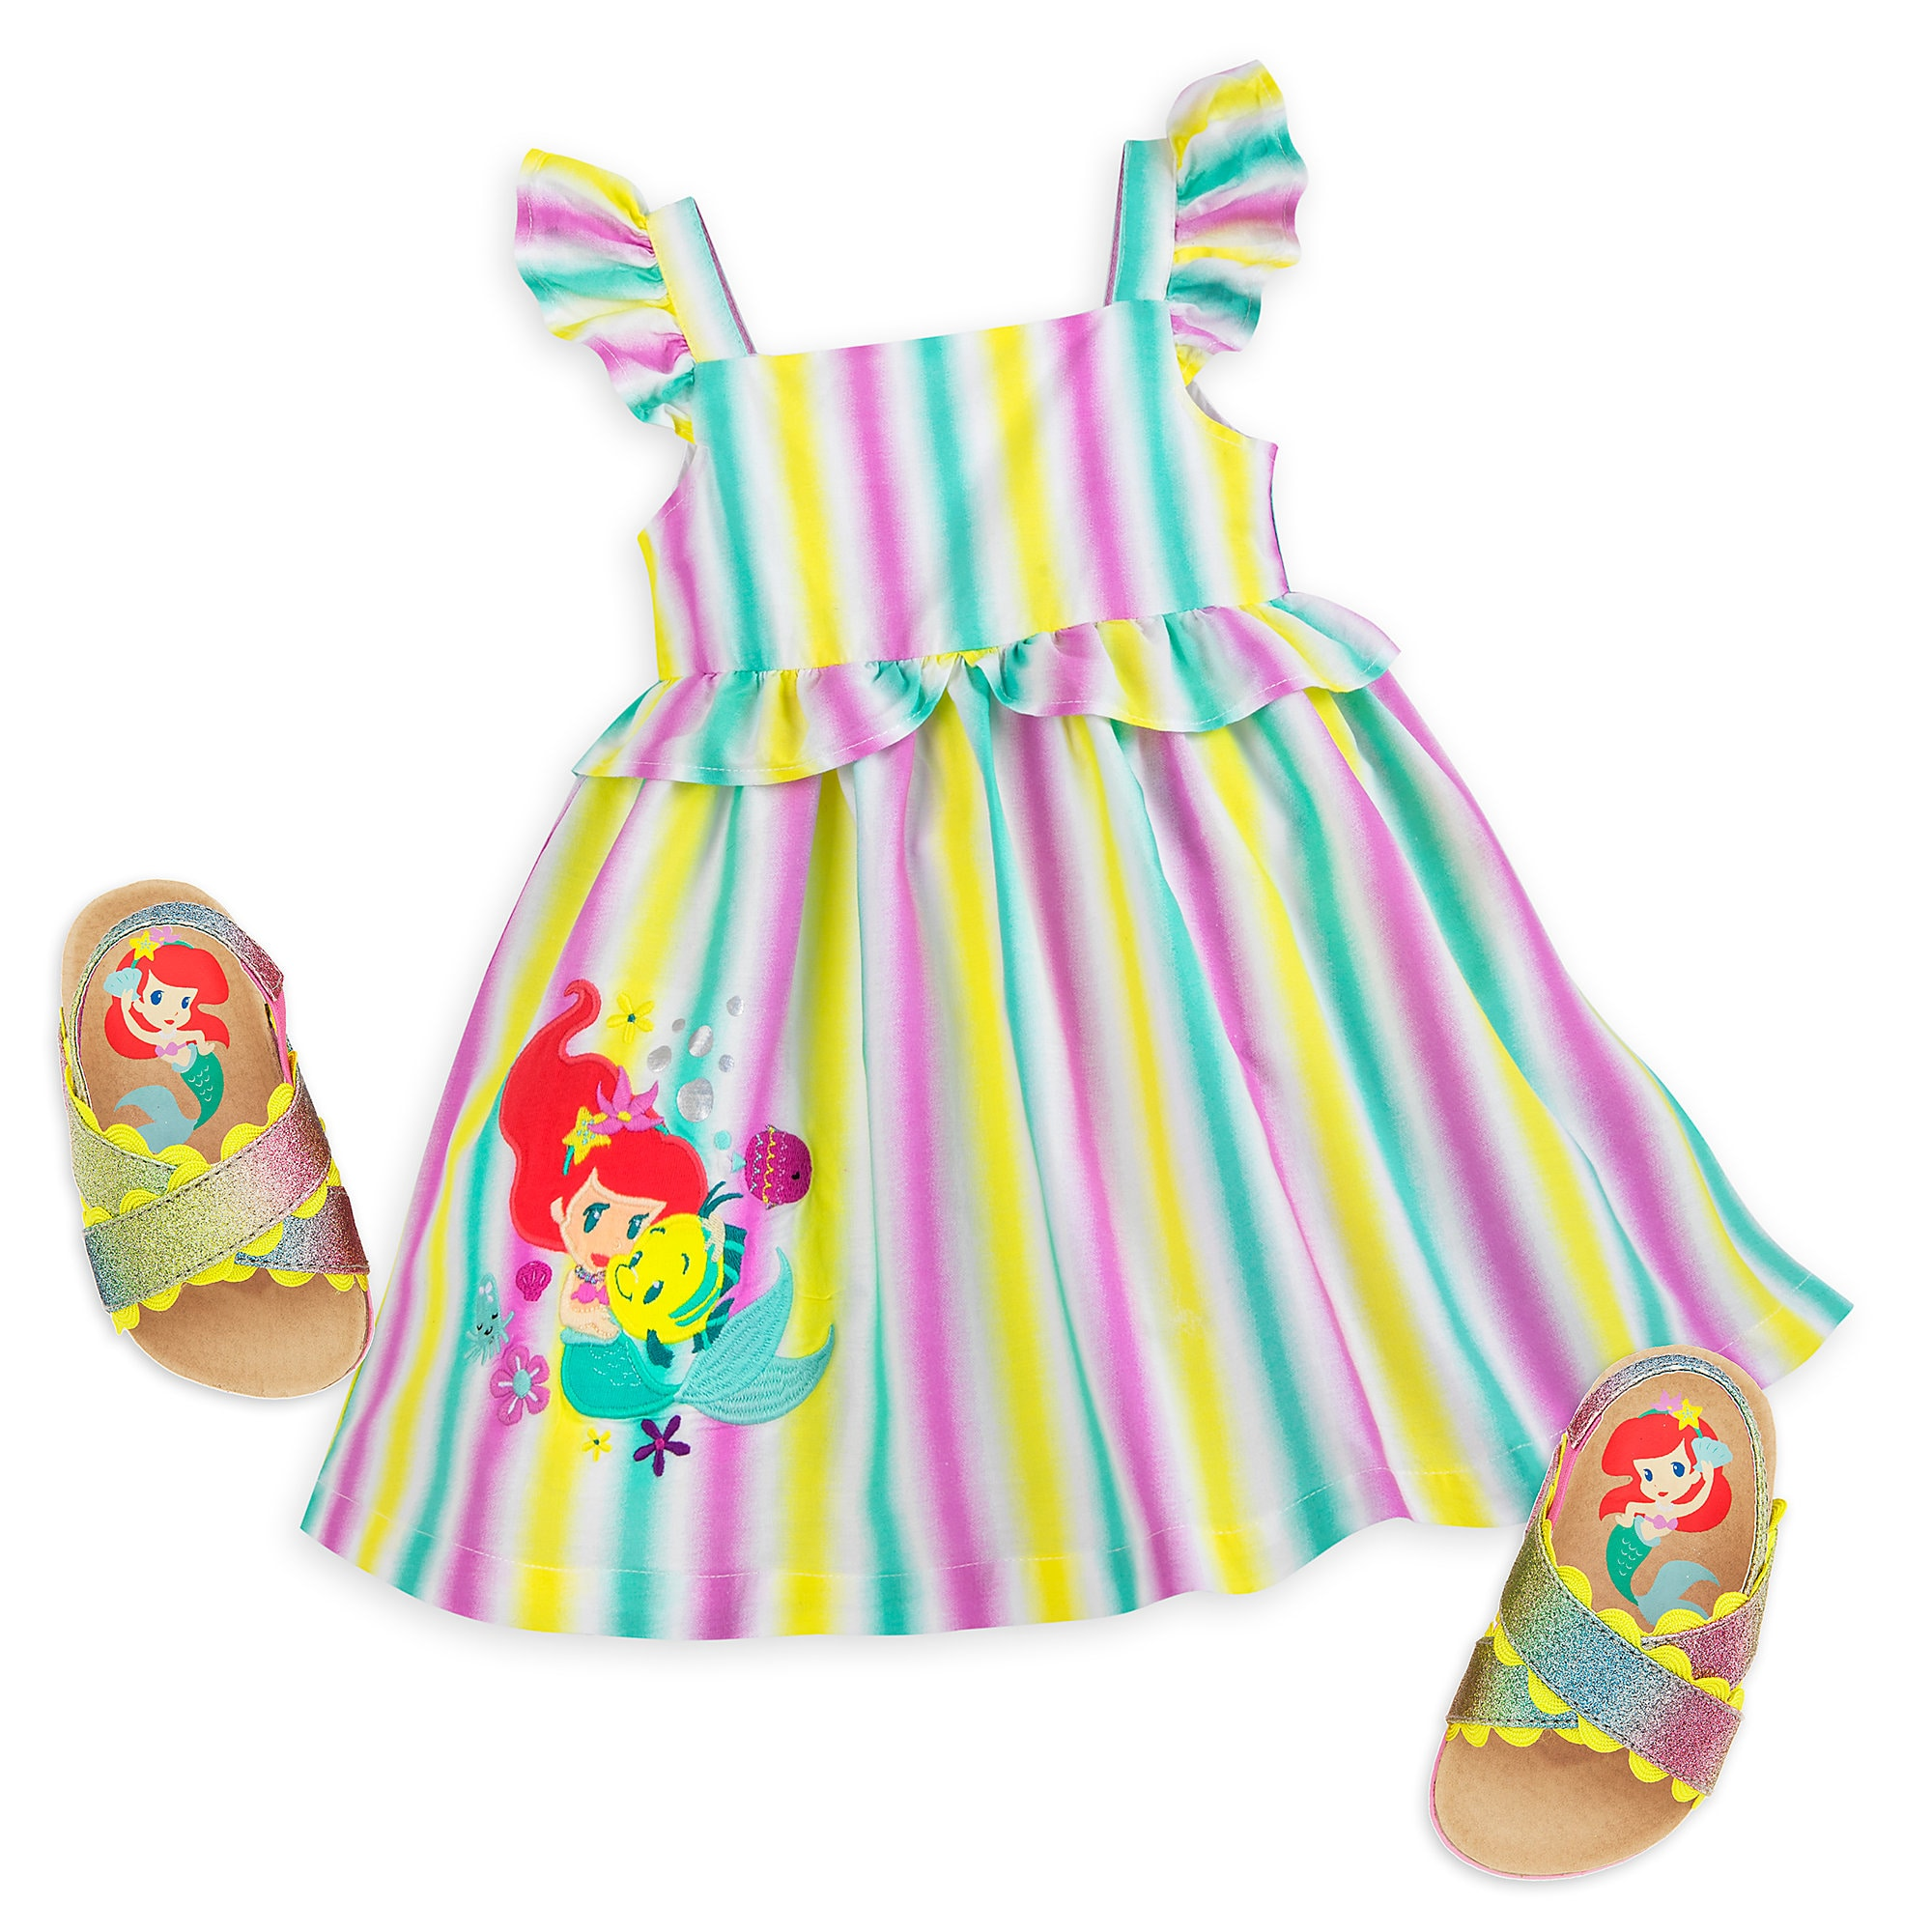 Ariel Fashion Collection for Baby - The Little Mermaid